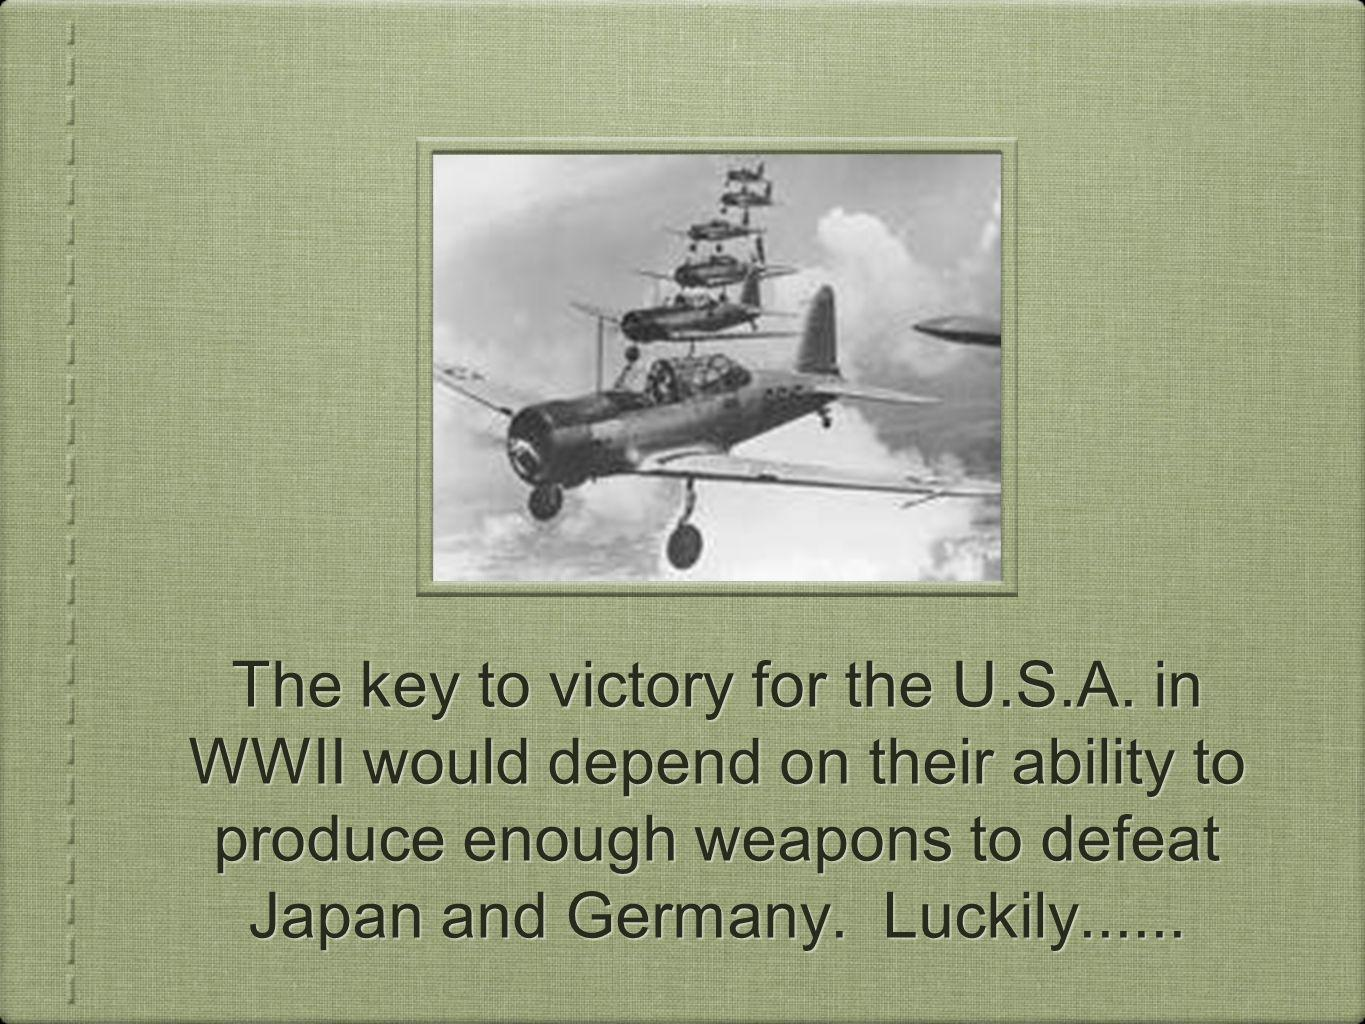 The key to victory for the U.S.A. in WWII would depend on their ability to produce enough weapons to defeat Japan and Germany. Luckily......